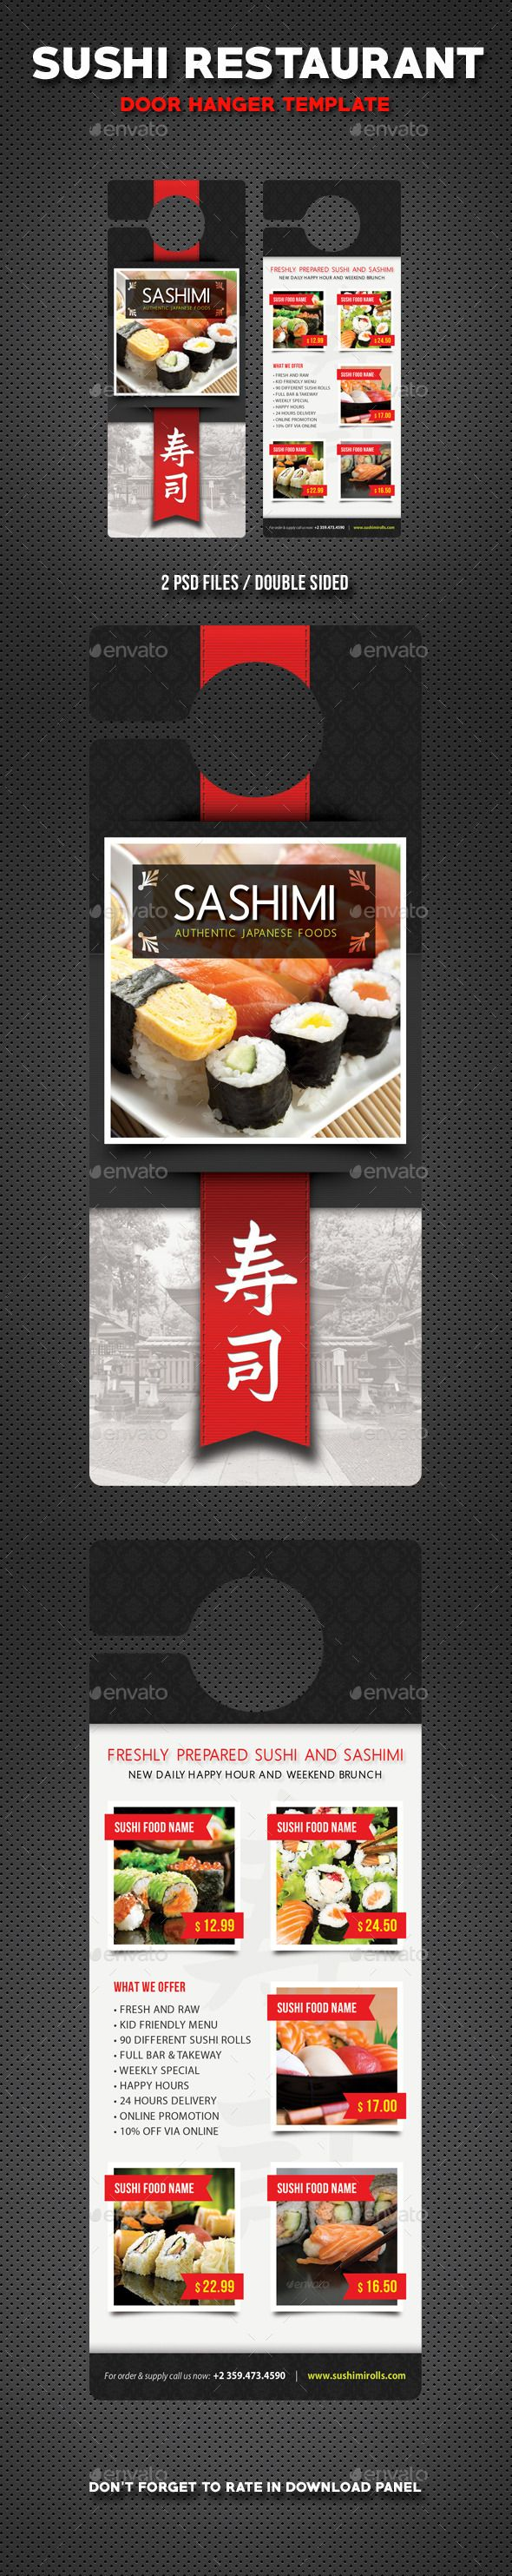 17 best images about Sushi Flyer Sushi Restaurant menu Print – Restaurant Door Hanger Template